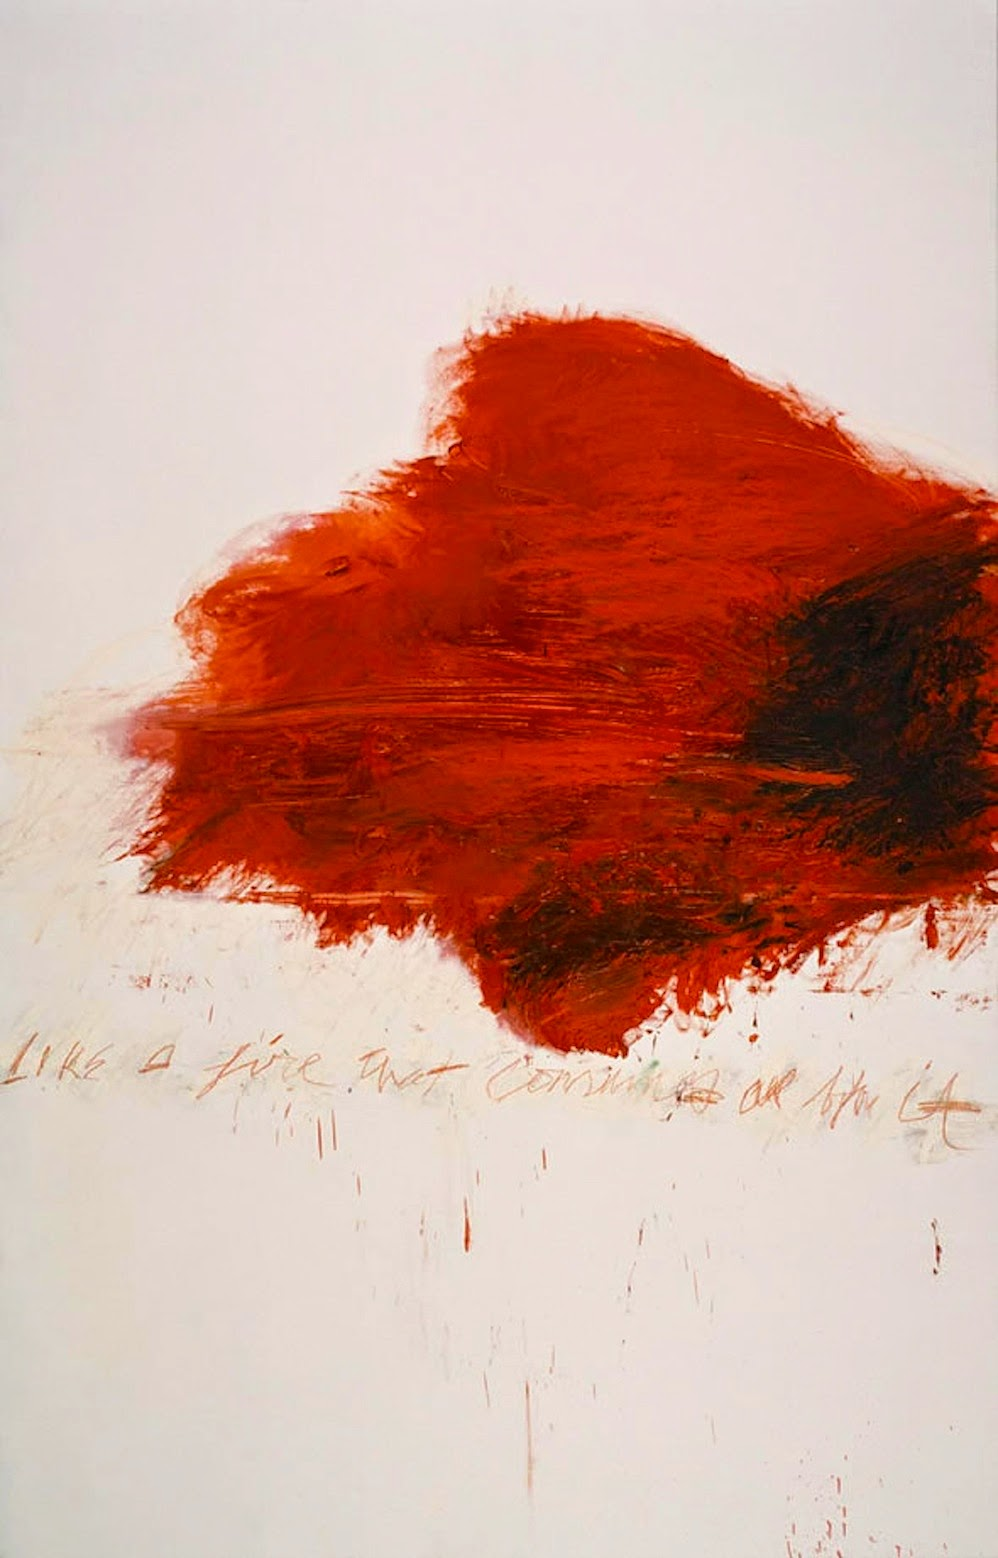 f5752-cy-twombly-the-fire-that-consumes-all-before-it-1978.jpg